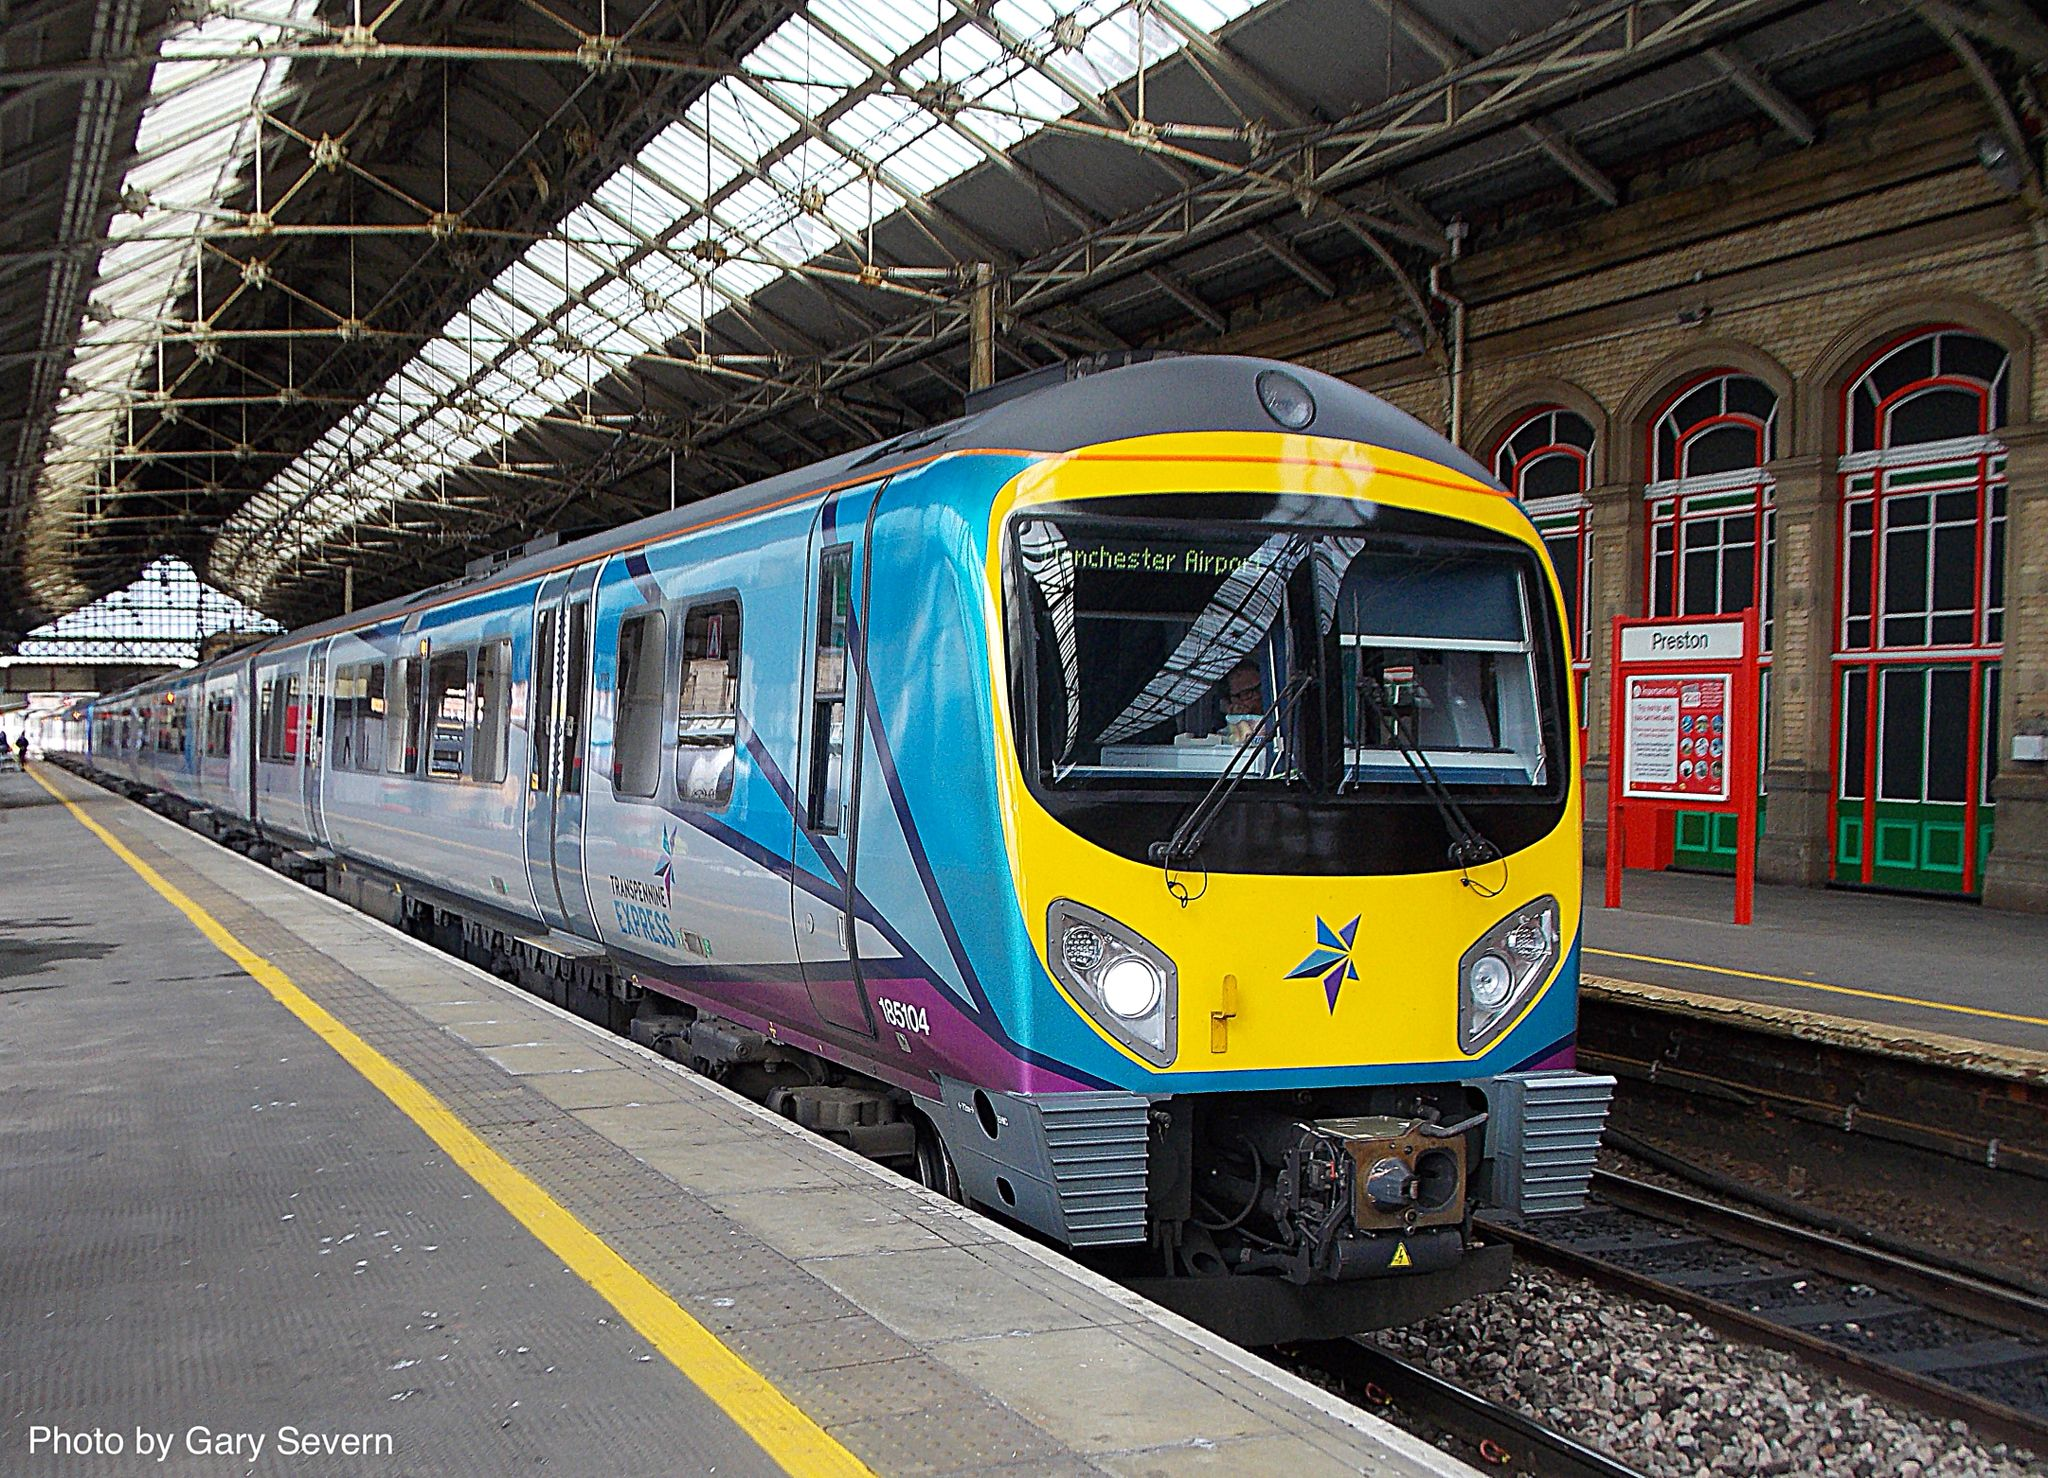 05fb3a0908f6bb028cea0c094be9c32c - How To Get From Manchester Train Station To Airport